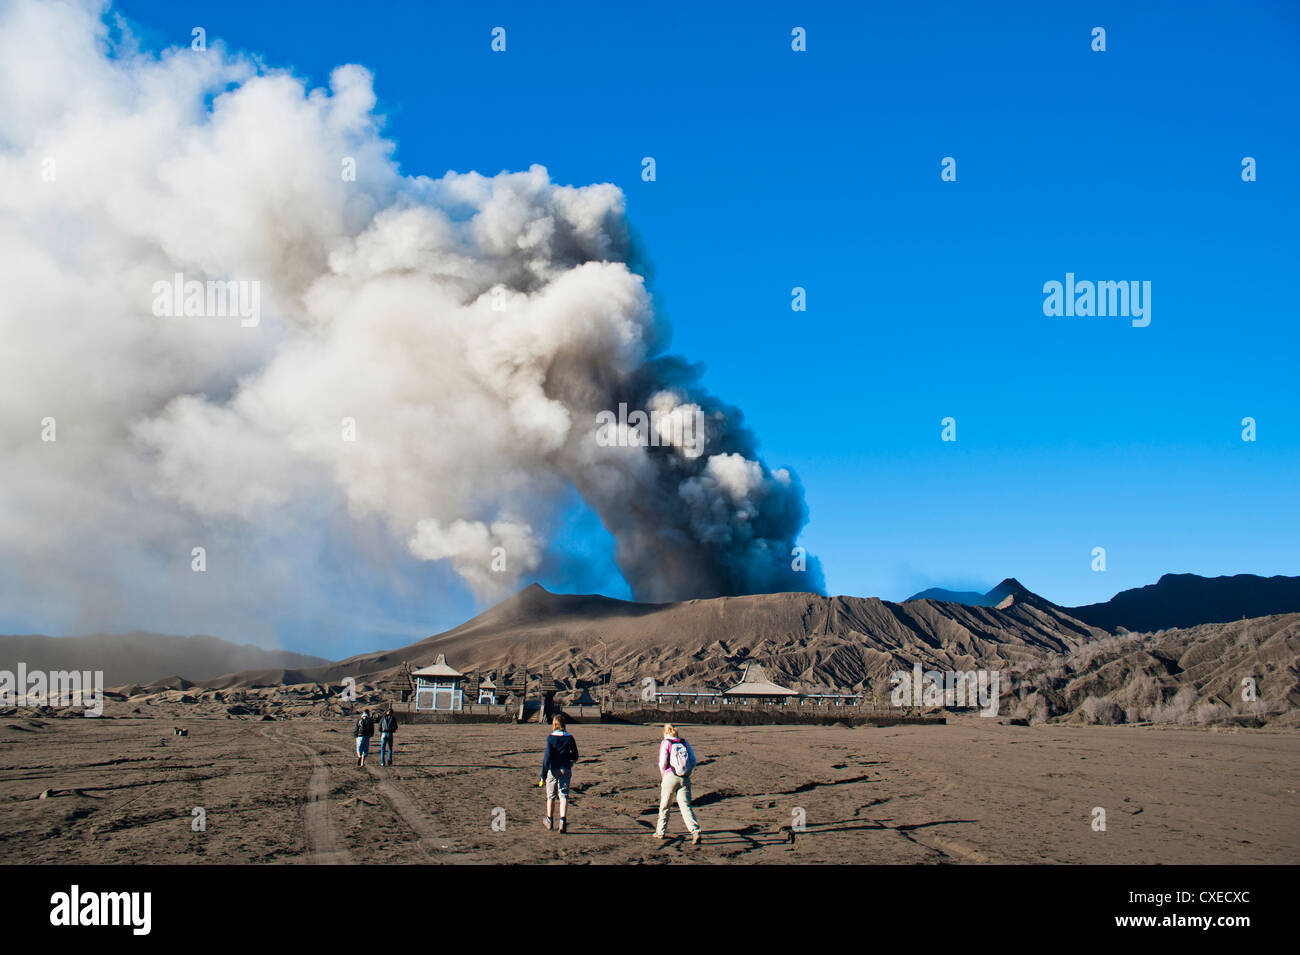 Tourists watching Mount Bromo volcanic eruption, East Java, Indonesia, Southeast Asia, Asia - Stock Image